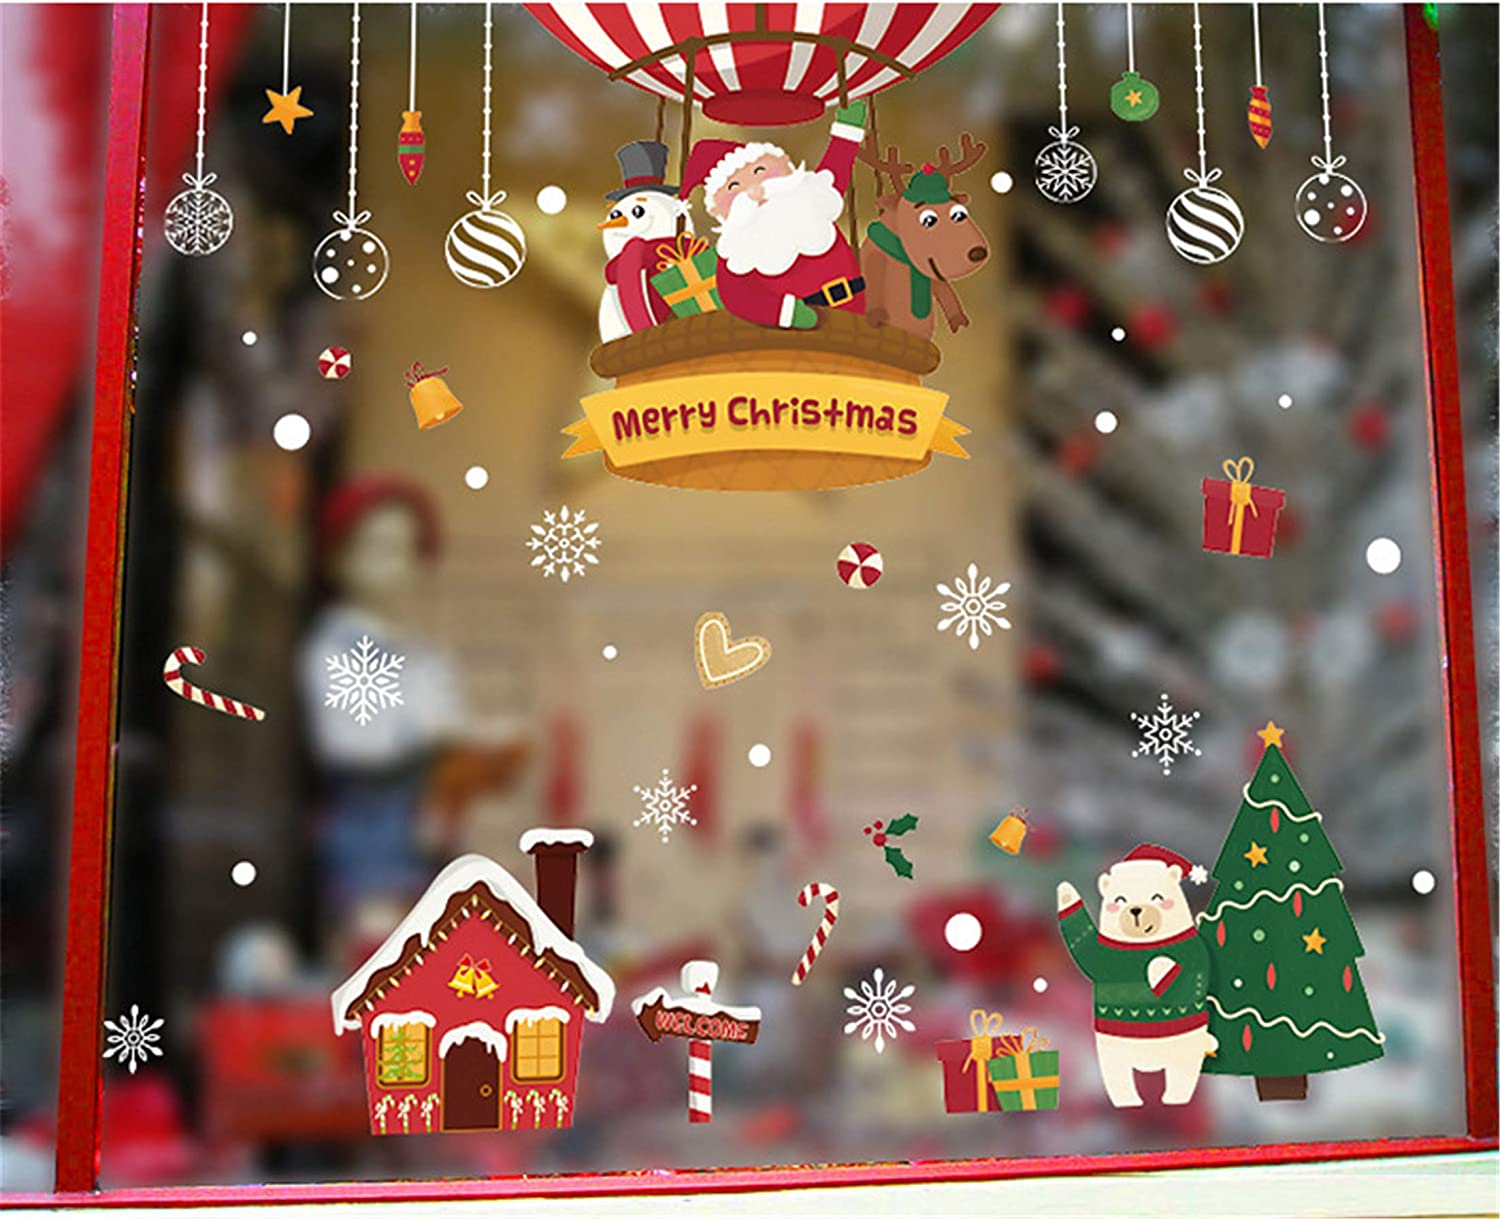 Kriccio Christmas Decorations Window Clings Large Stickers for Glass, Xmas Decor Decals Holiday Snowflake Reindeer Snowman Christmas Tree Stocking, Party Supplies Gift Idea HM92035ds